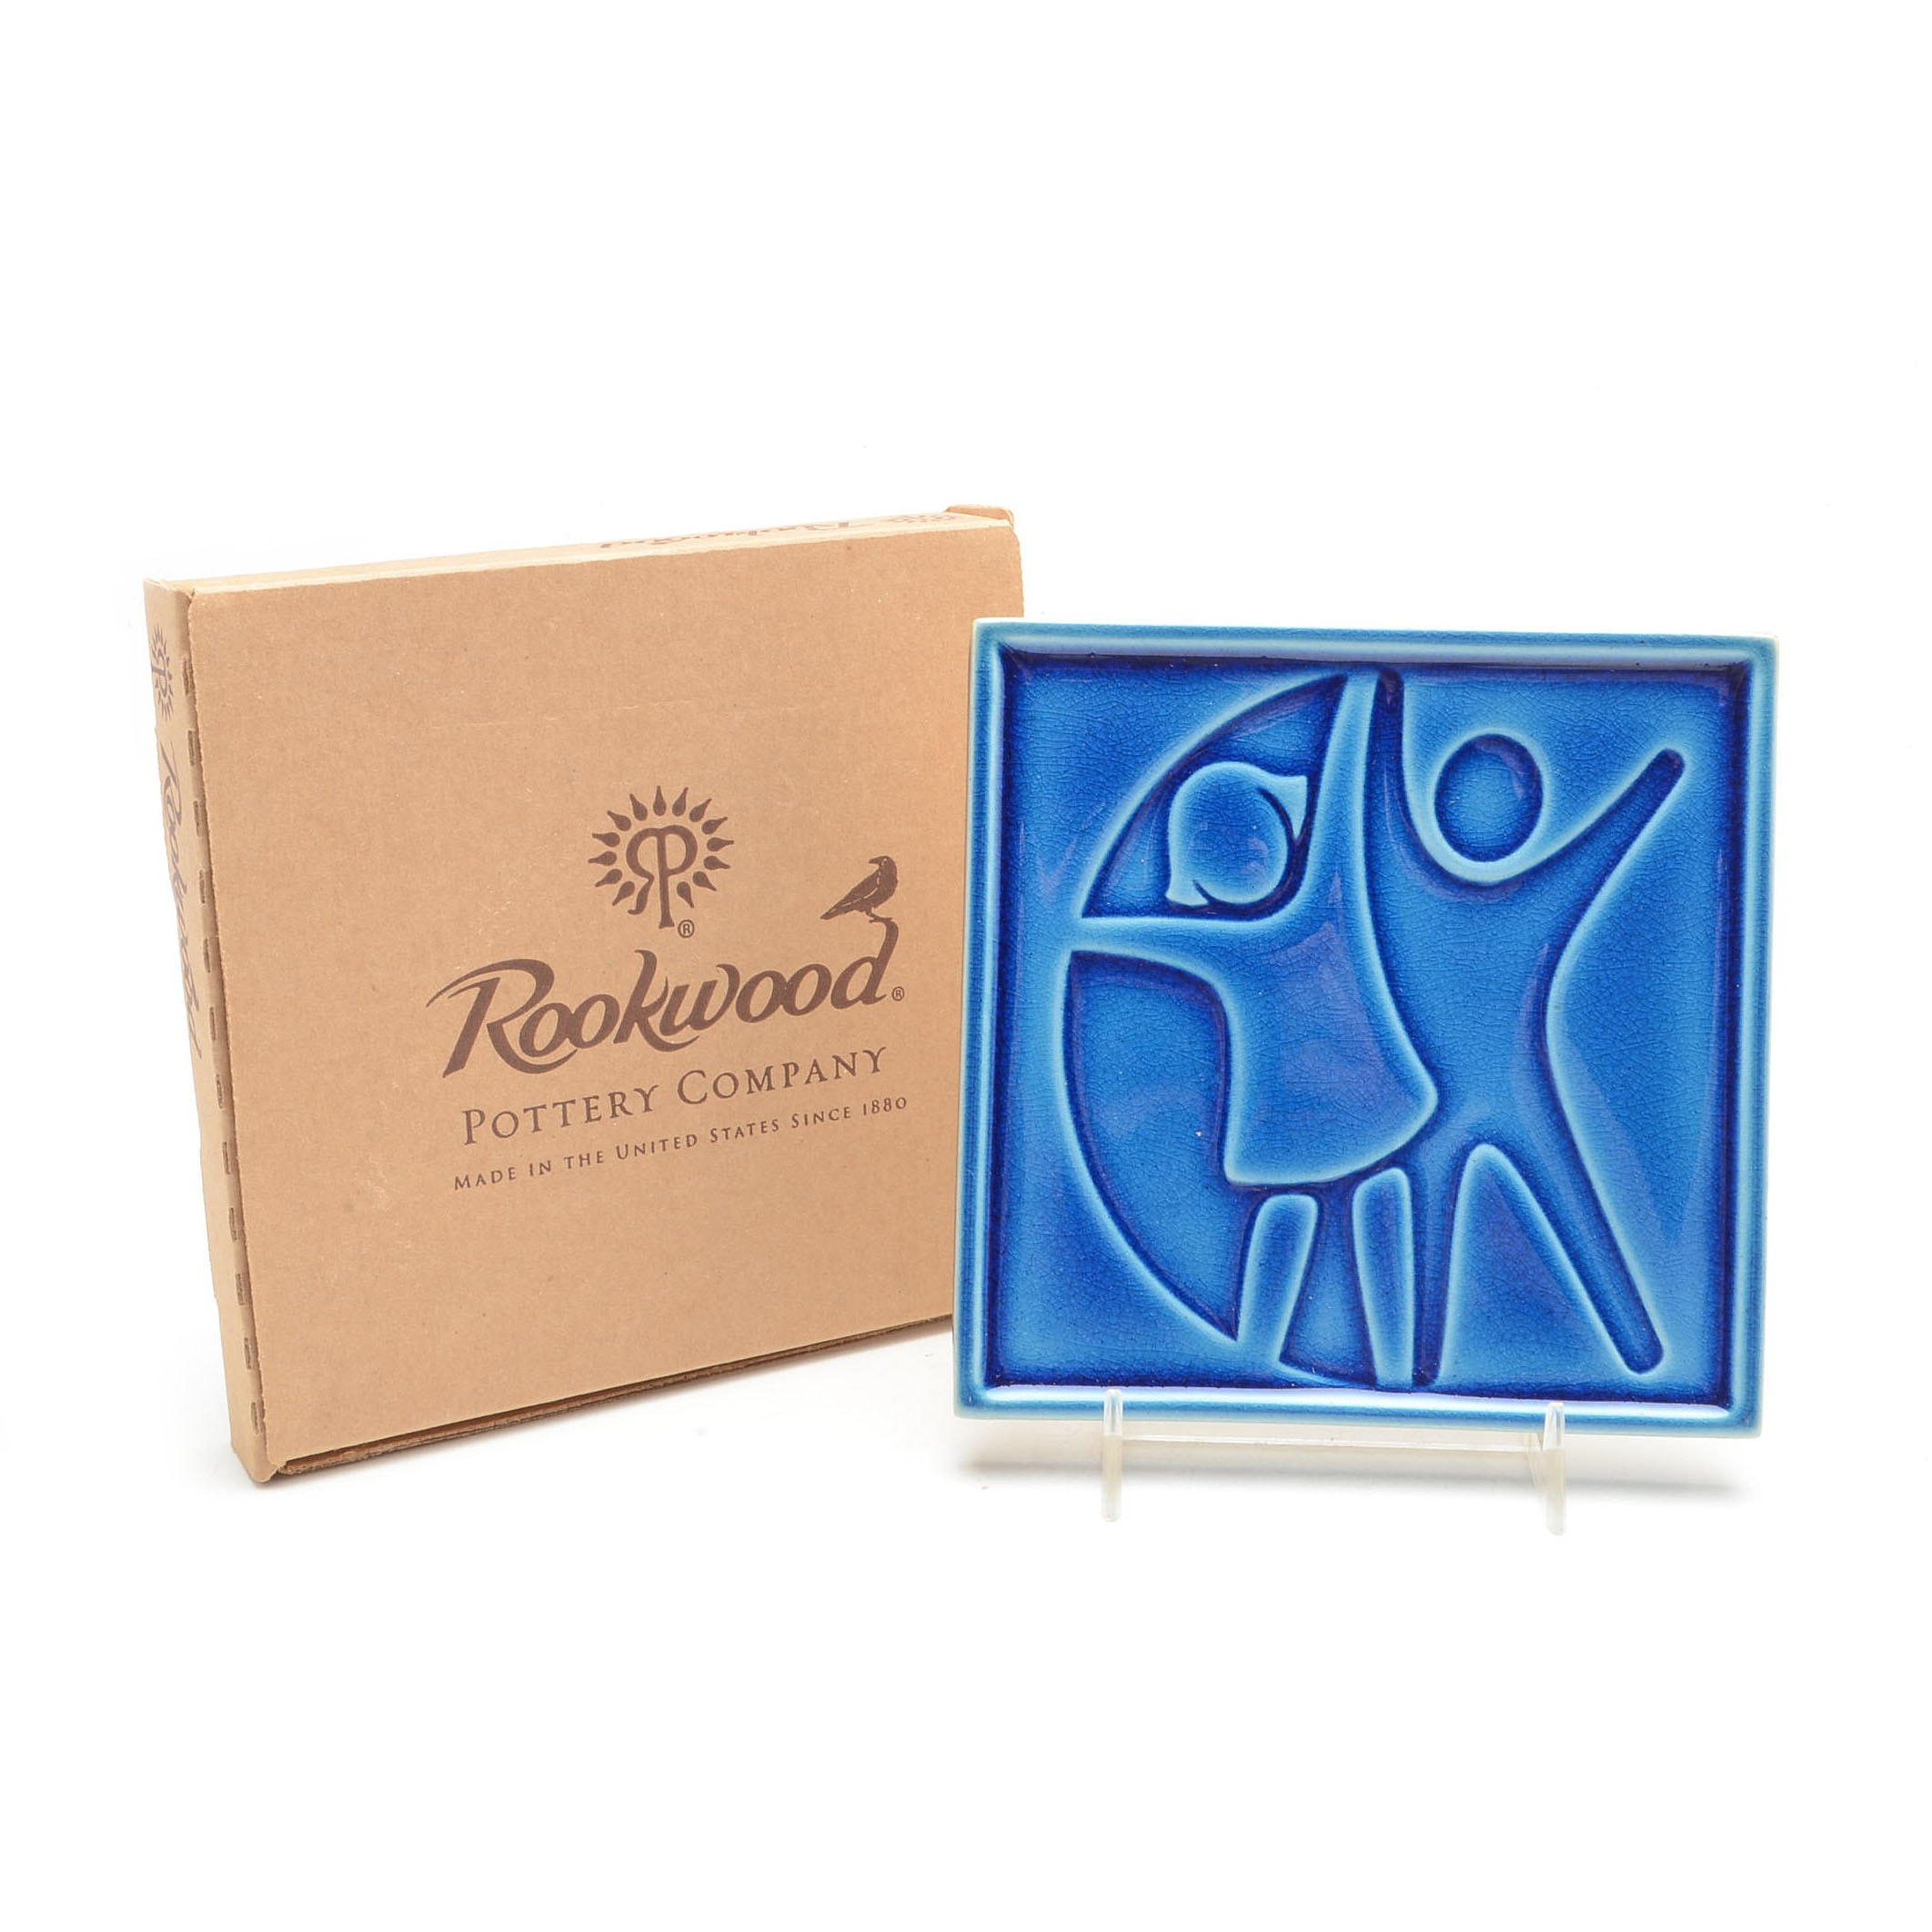 Rookwood Pottery Art Tile, Cincinnati Children's Hospital Medical Center